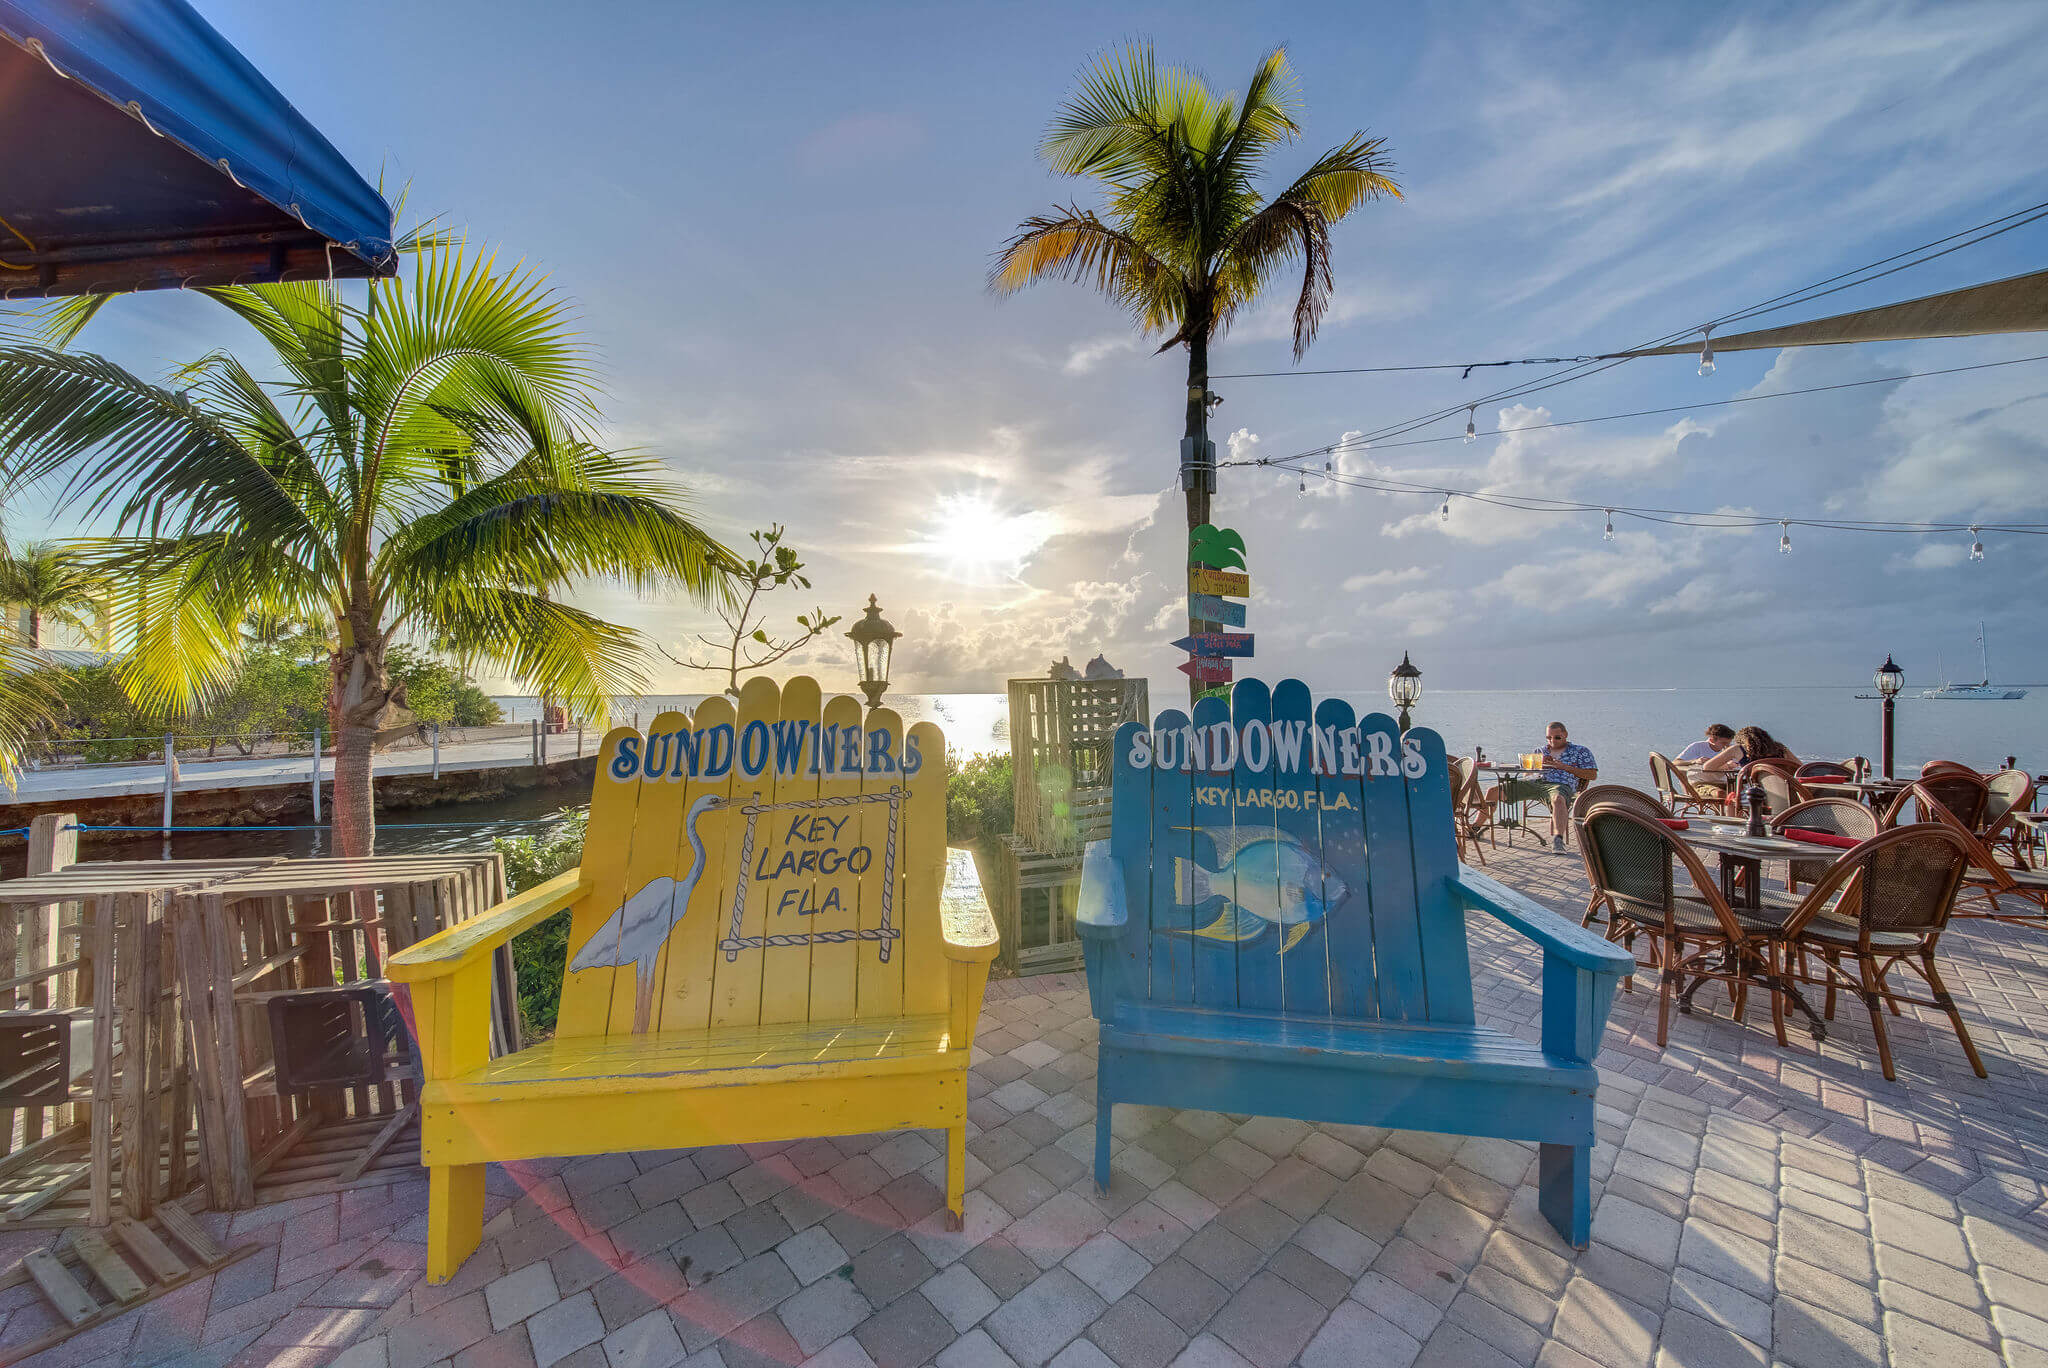 Key Largo Restaurant In The Florida Keys Sundowners